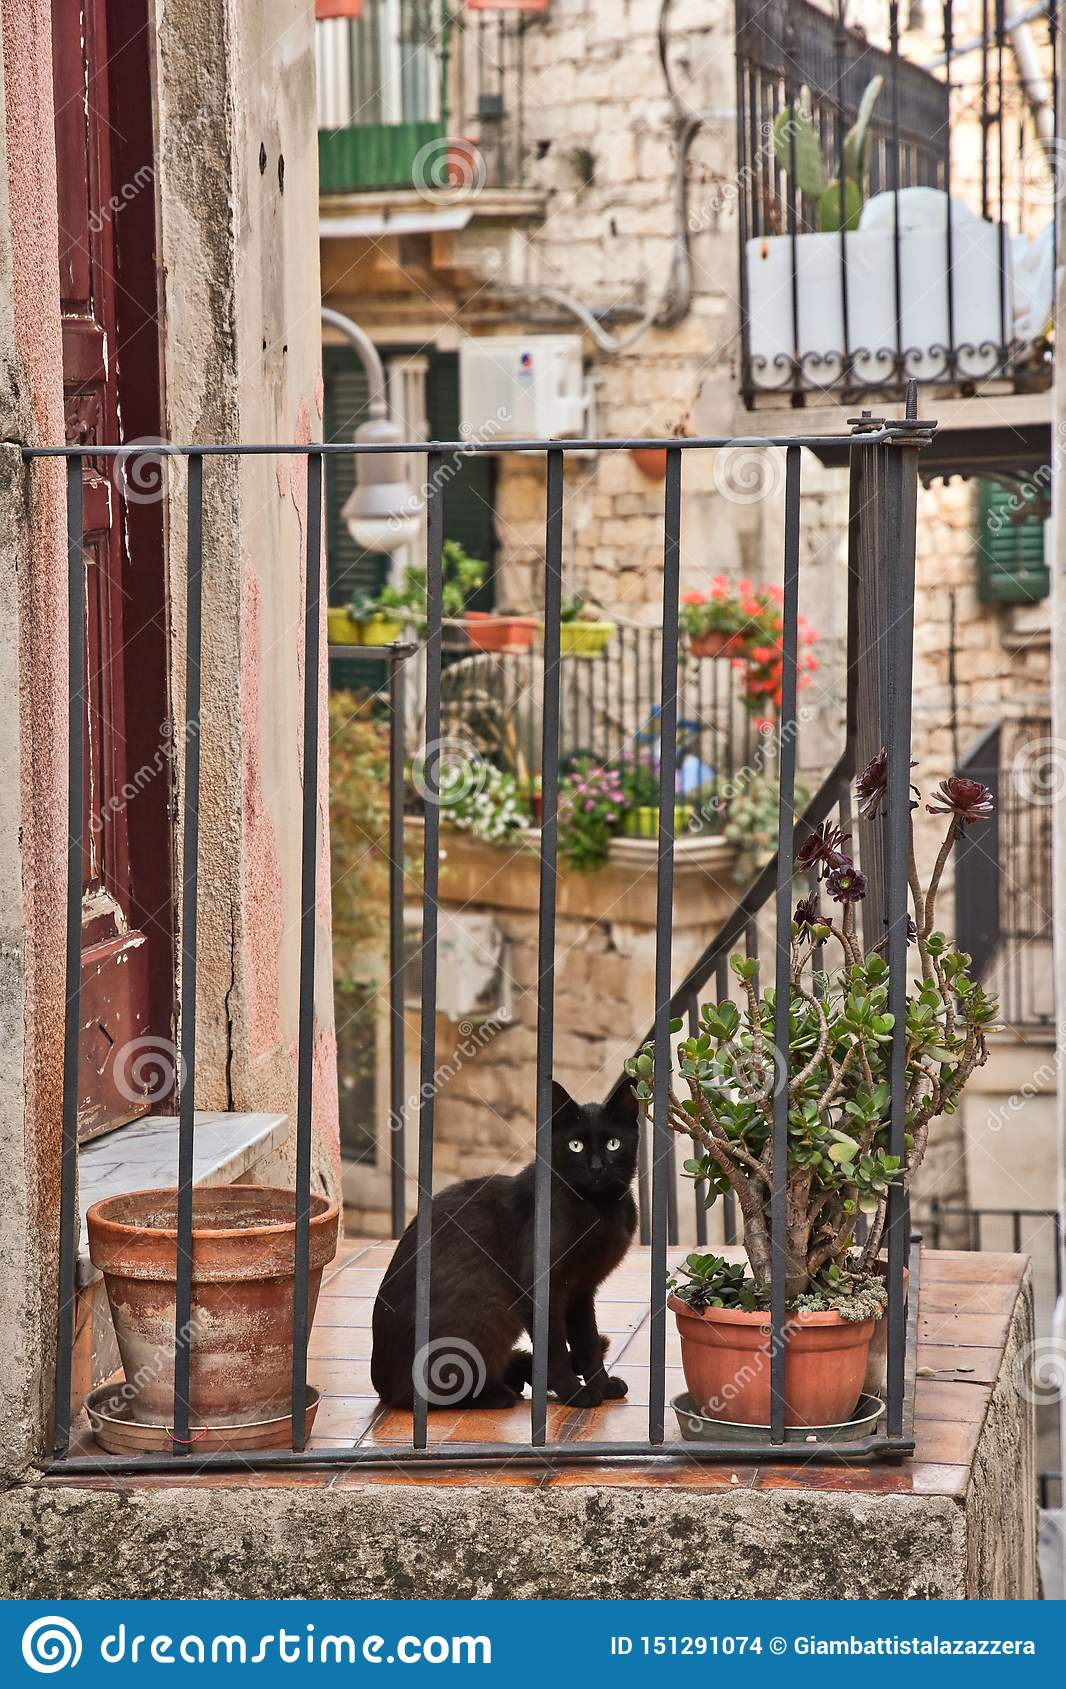 An cat in the village of Modica in Italy.